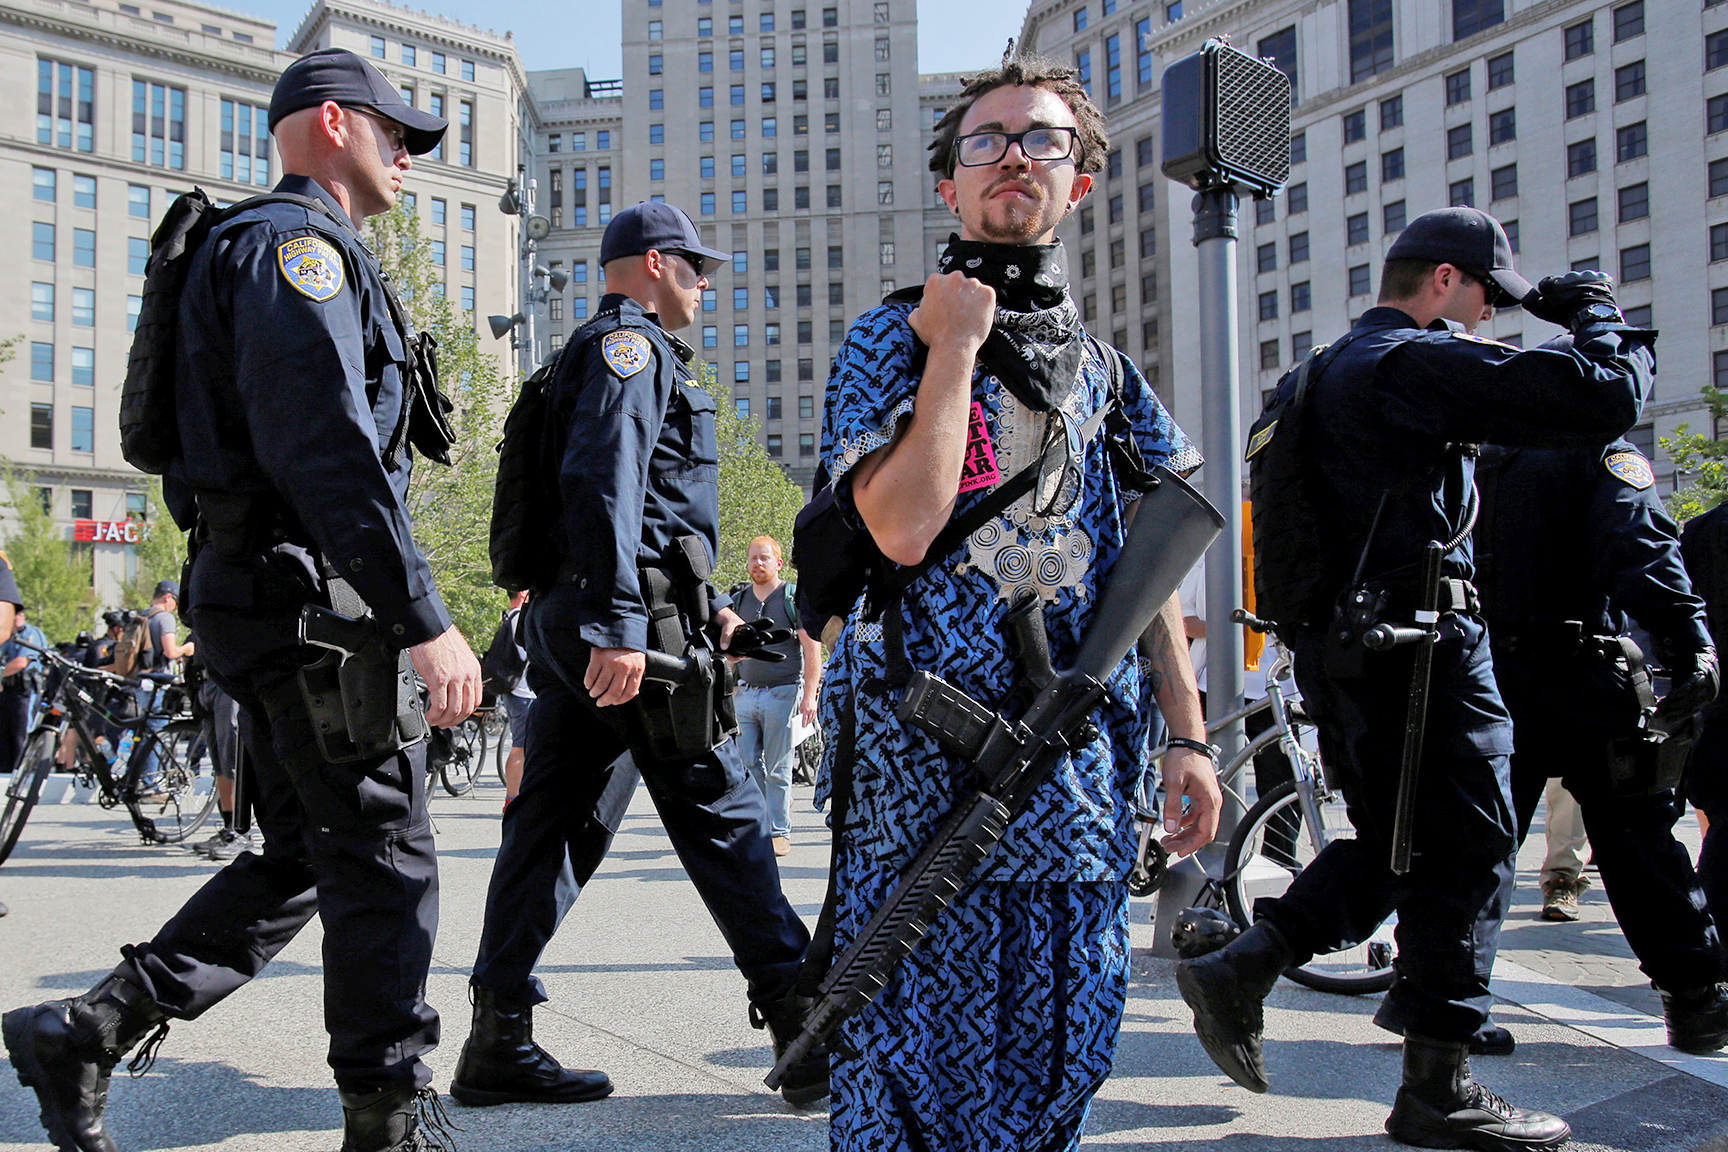 Jaimes Campbell, who advocates for open carry, stands with a gun as police walk by in Cleveland Public Square outside the Republican National Convention in Cleveland, Ohio